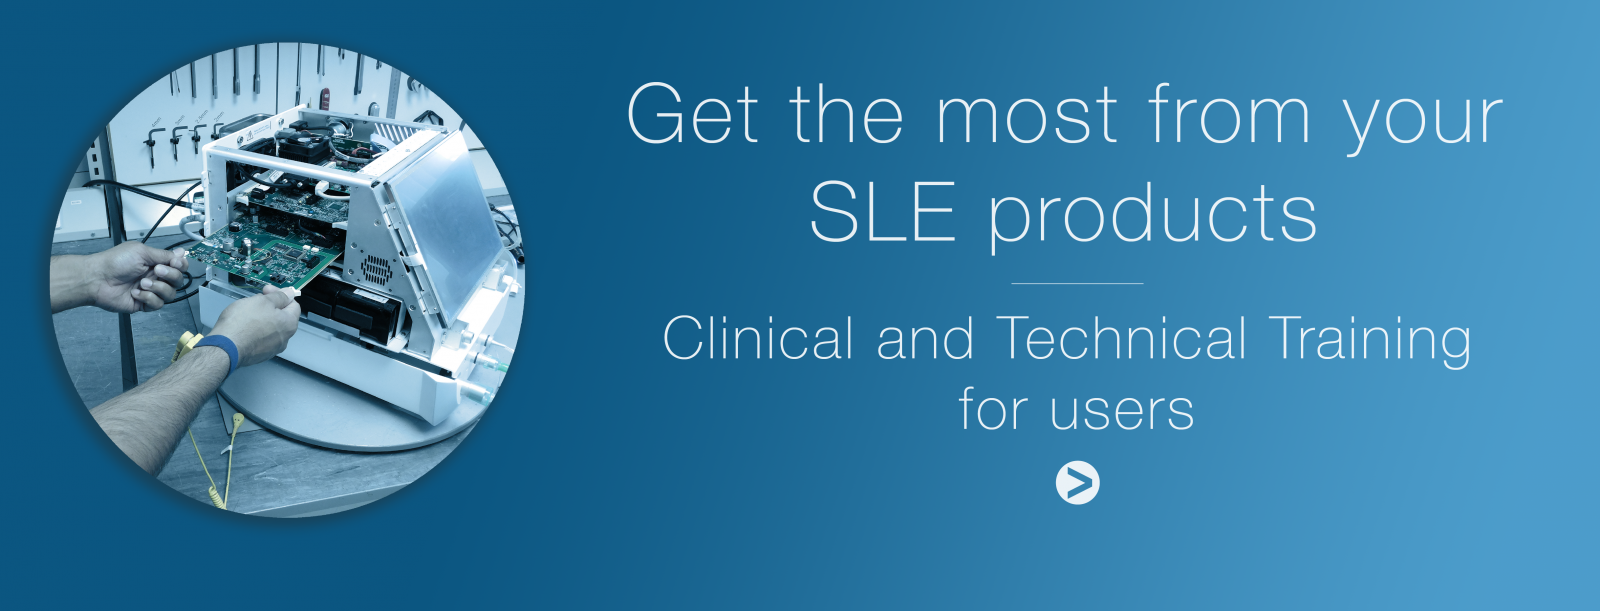 Get the most from your SLE products